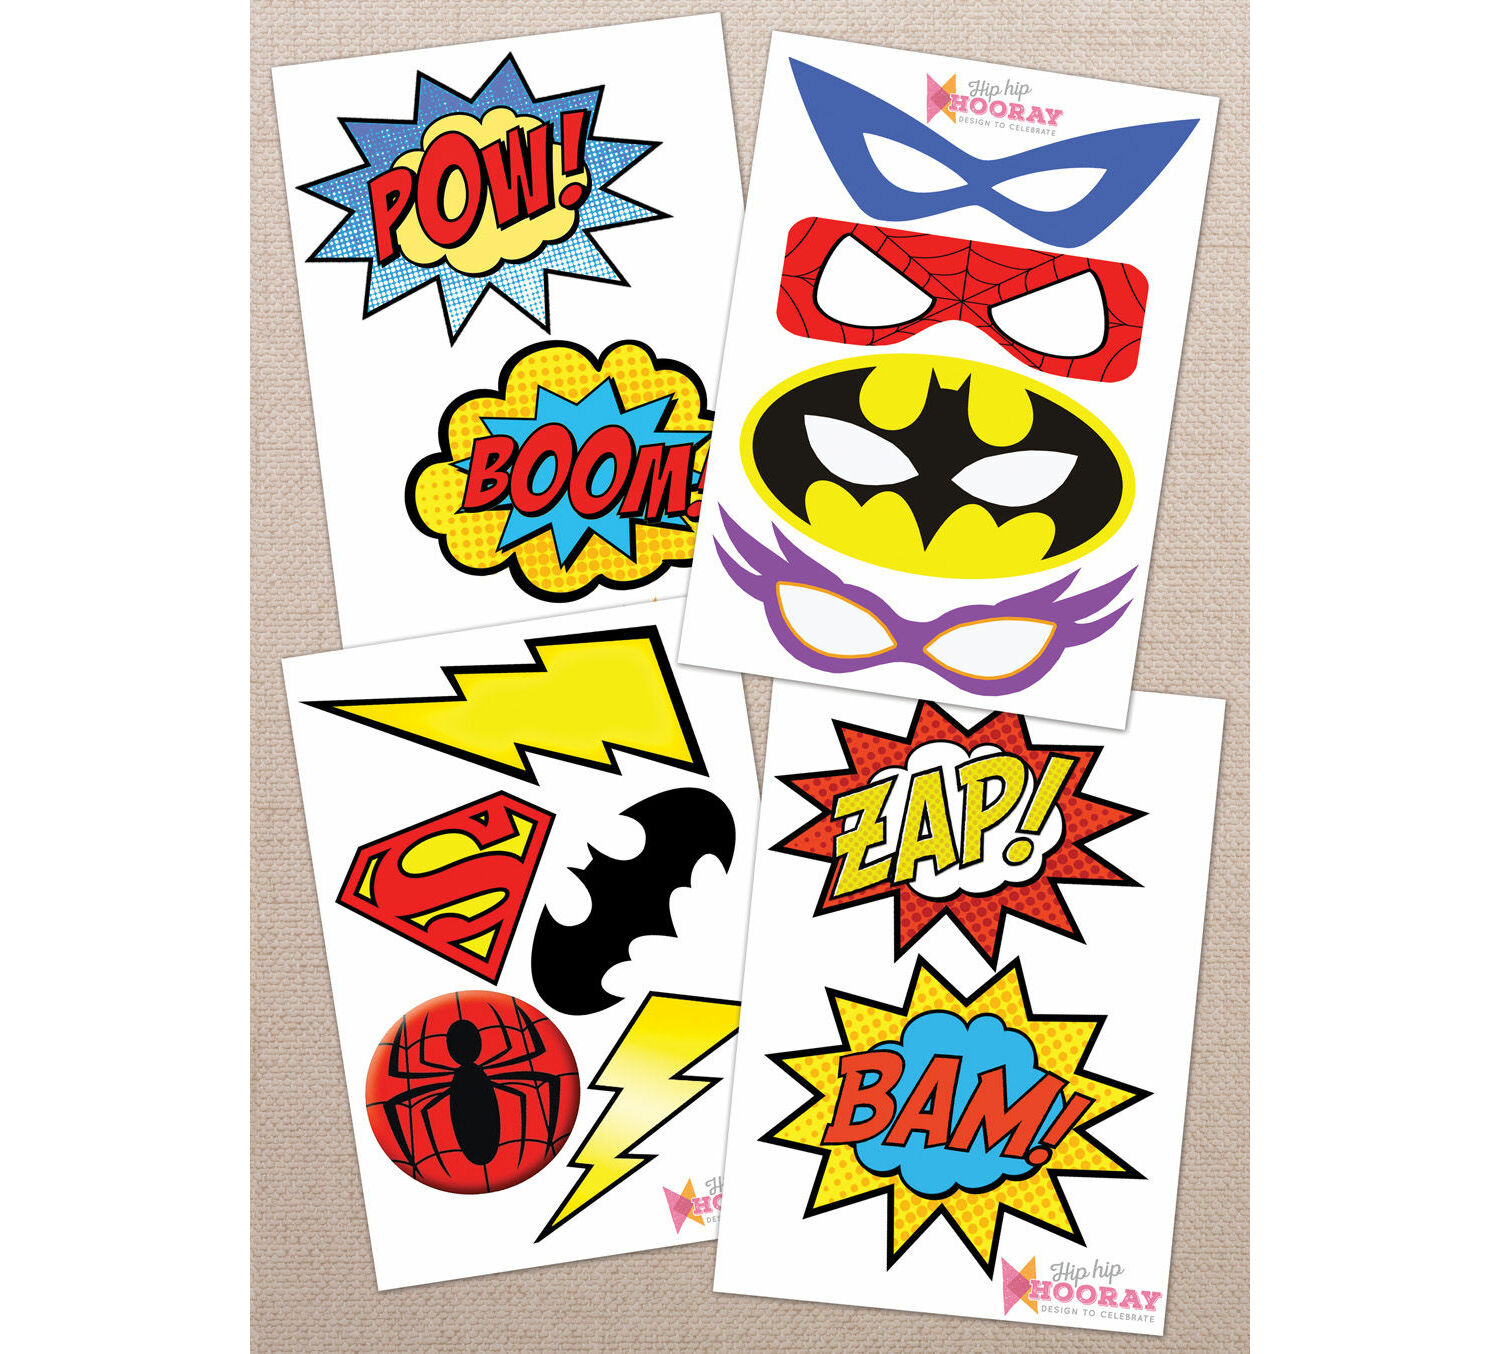 photograph regarding Free Printable Superhero Photo Booth Props referred to as Printable Superhero Image Booth Props